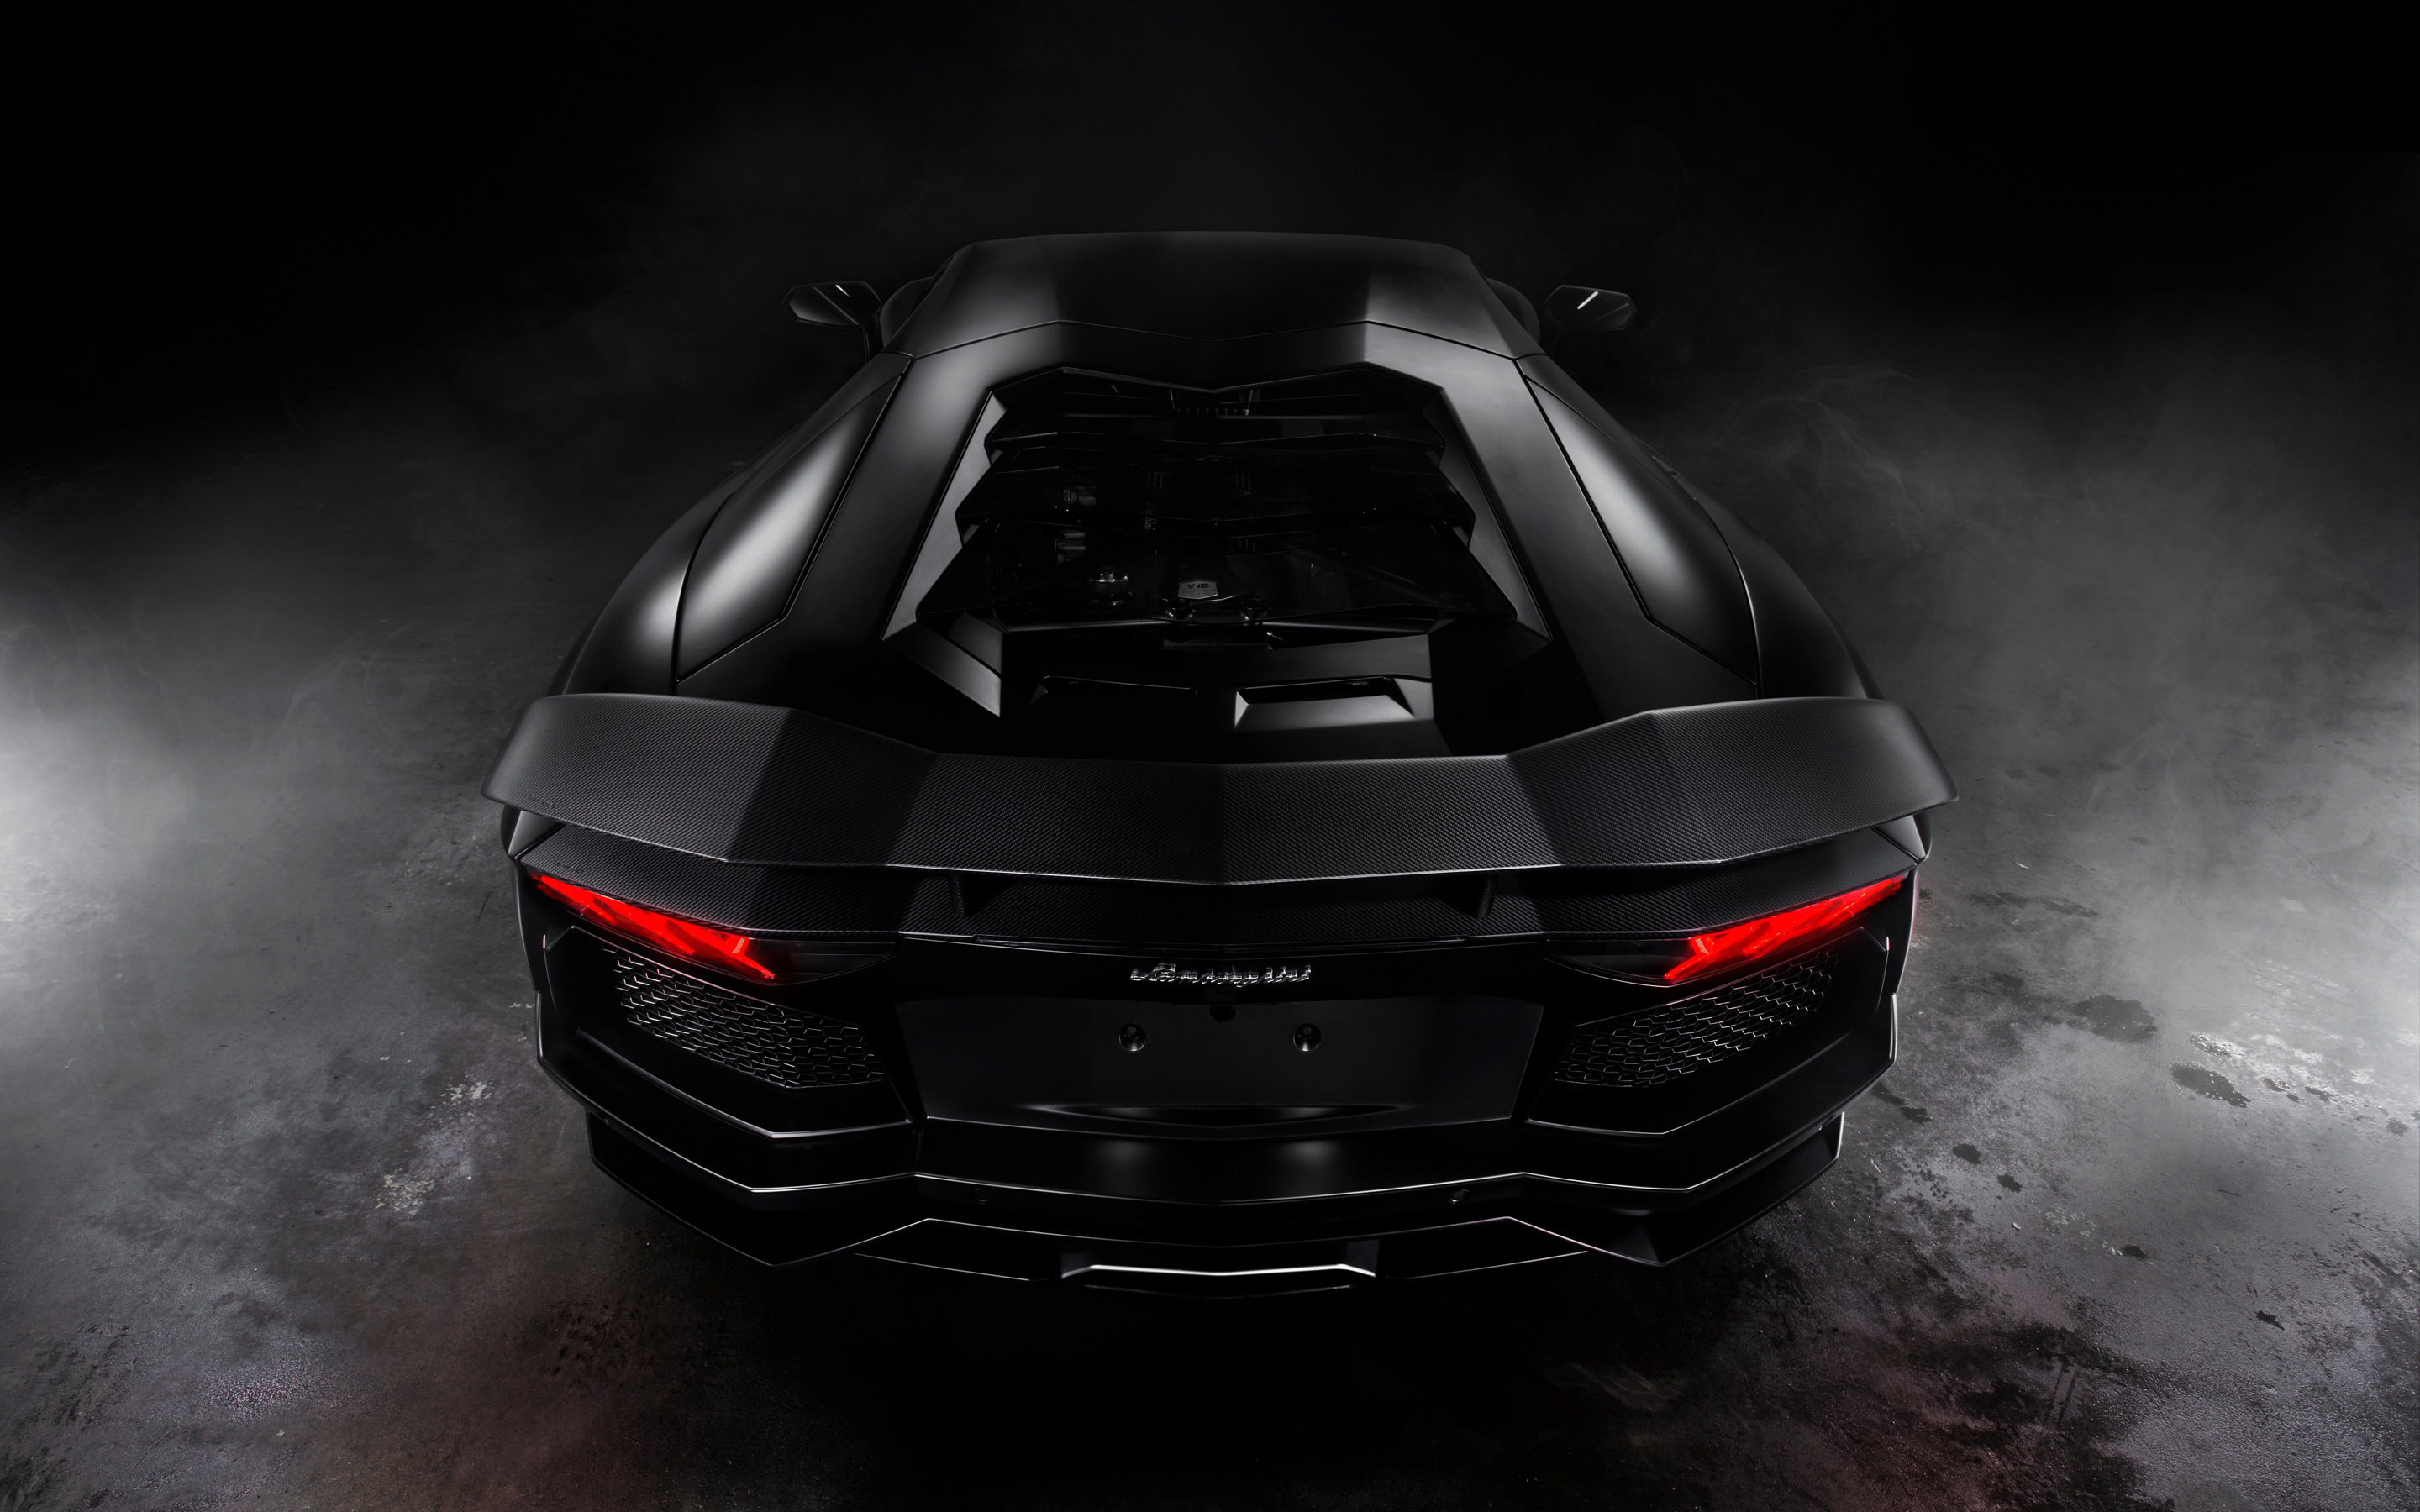 Lamborghini Aventador Matte Black HD Wallpaper 2880x1800